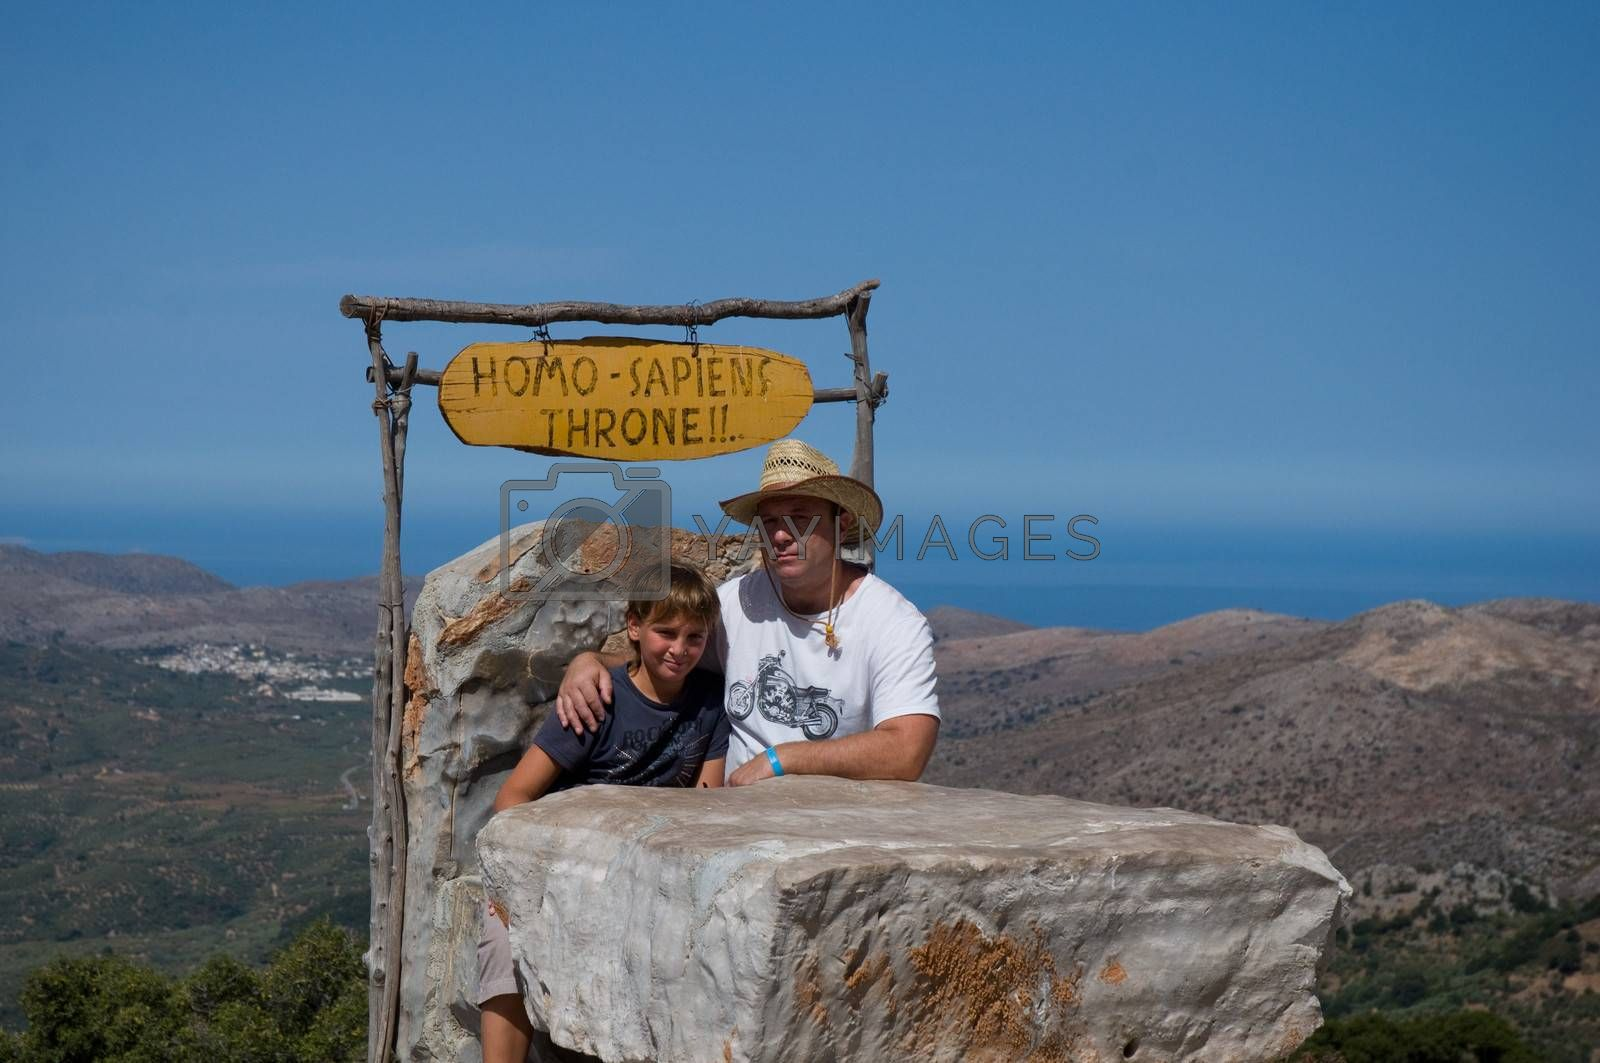 Father and son sit on the throne of mountains in the background. Crit. Greece.